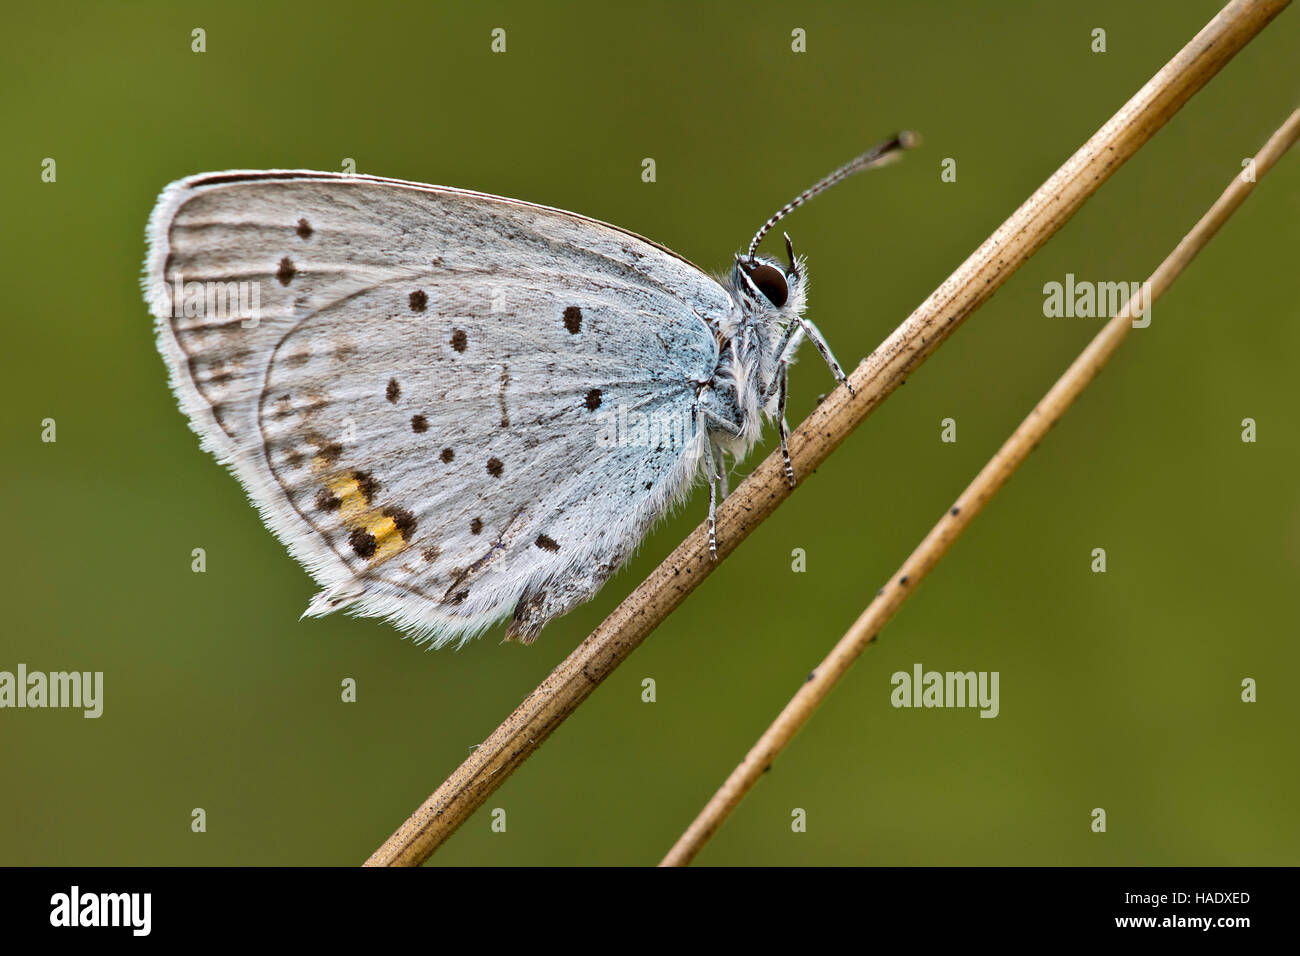 Short-tailed blue (Cupido argiades) butterfly, Burgenland, Austria - Stock Image